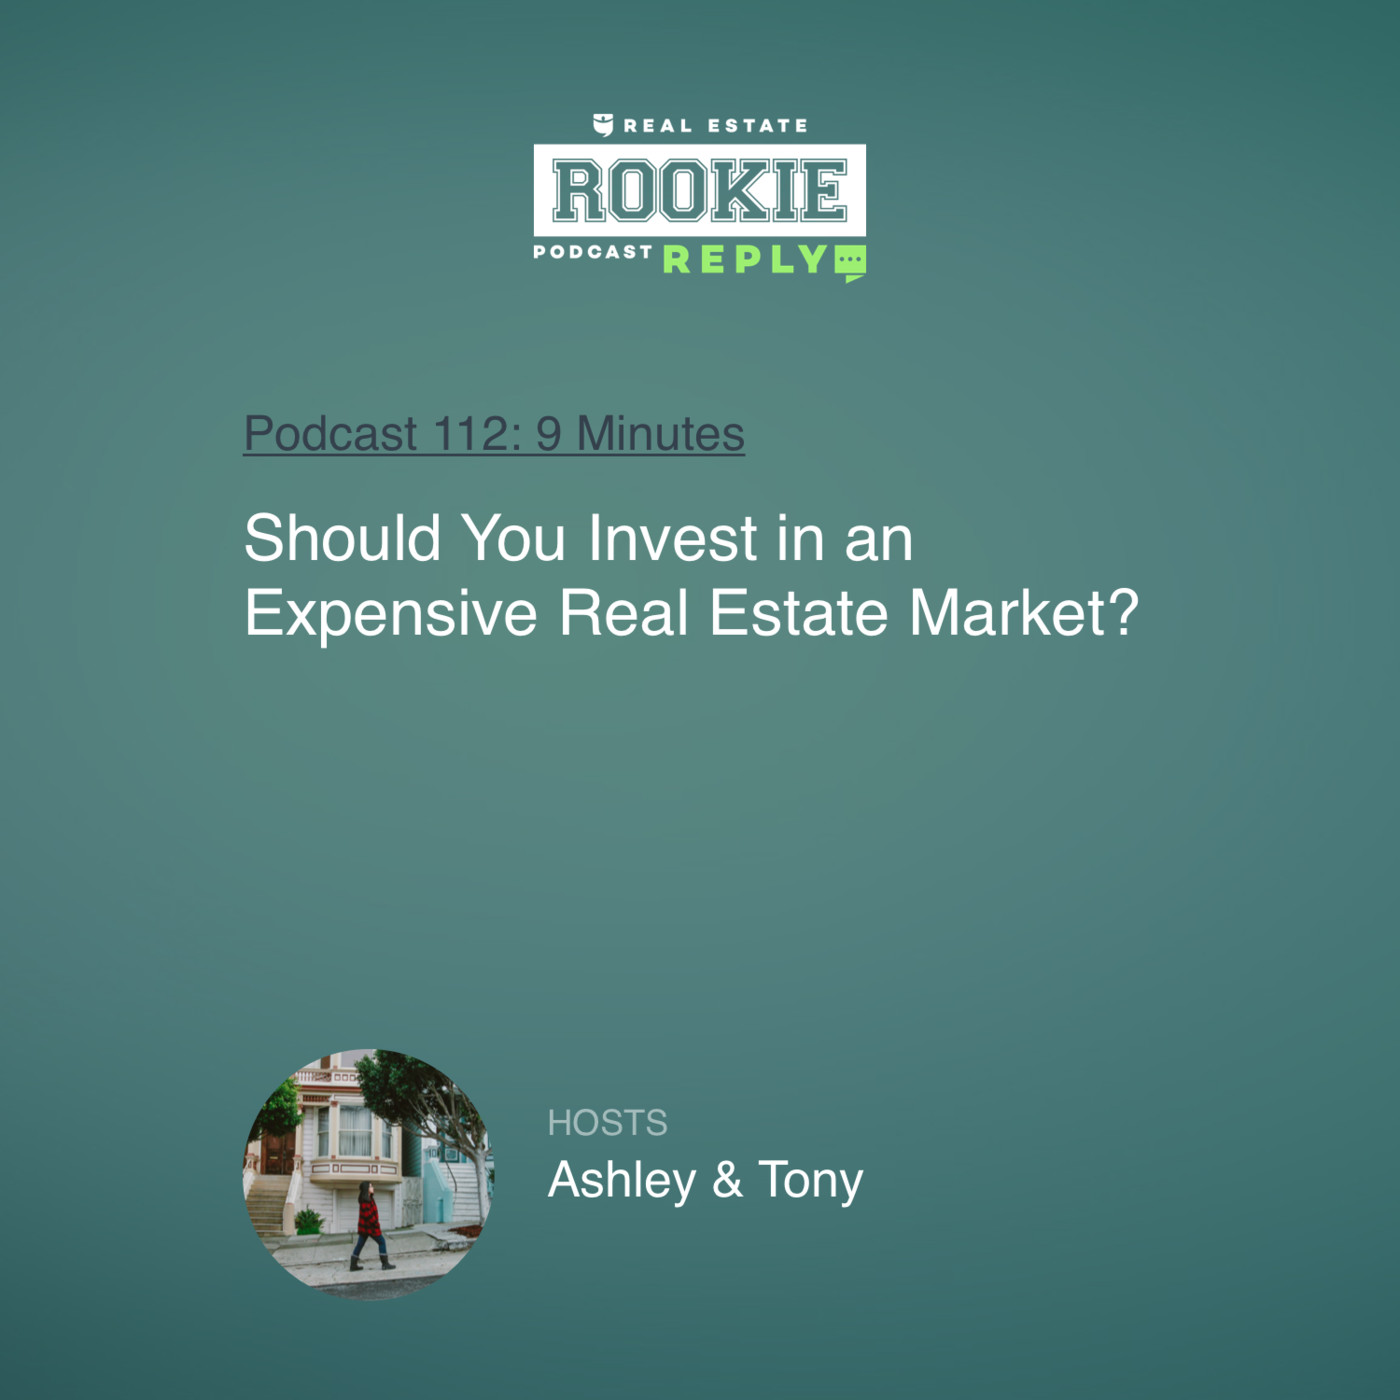 Rookie Reply: Should You Invest in an Expensive Real Estate Market?